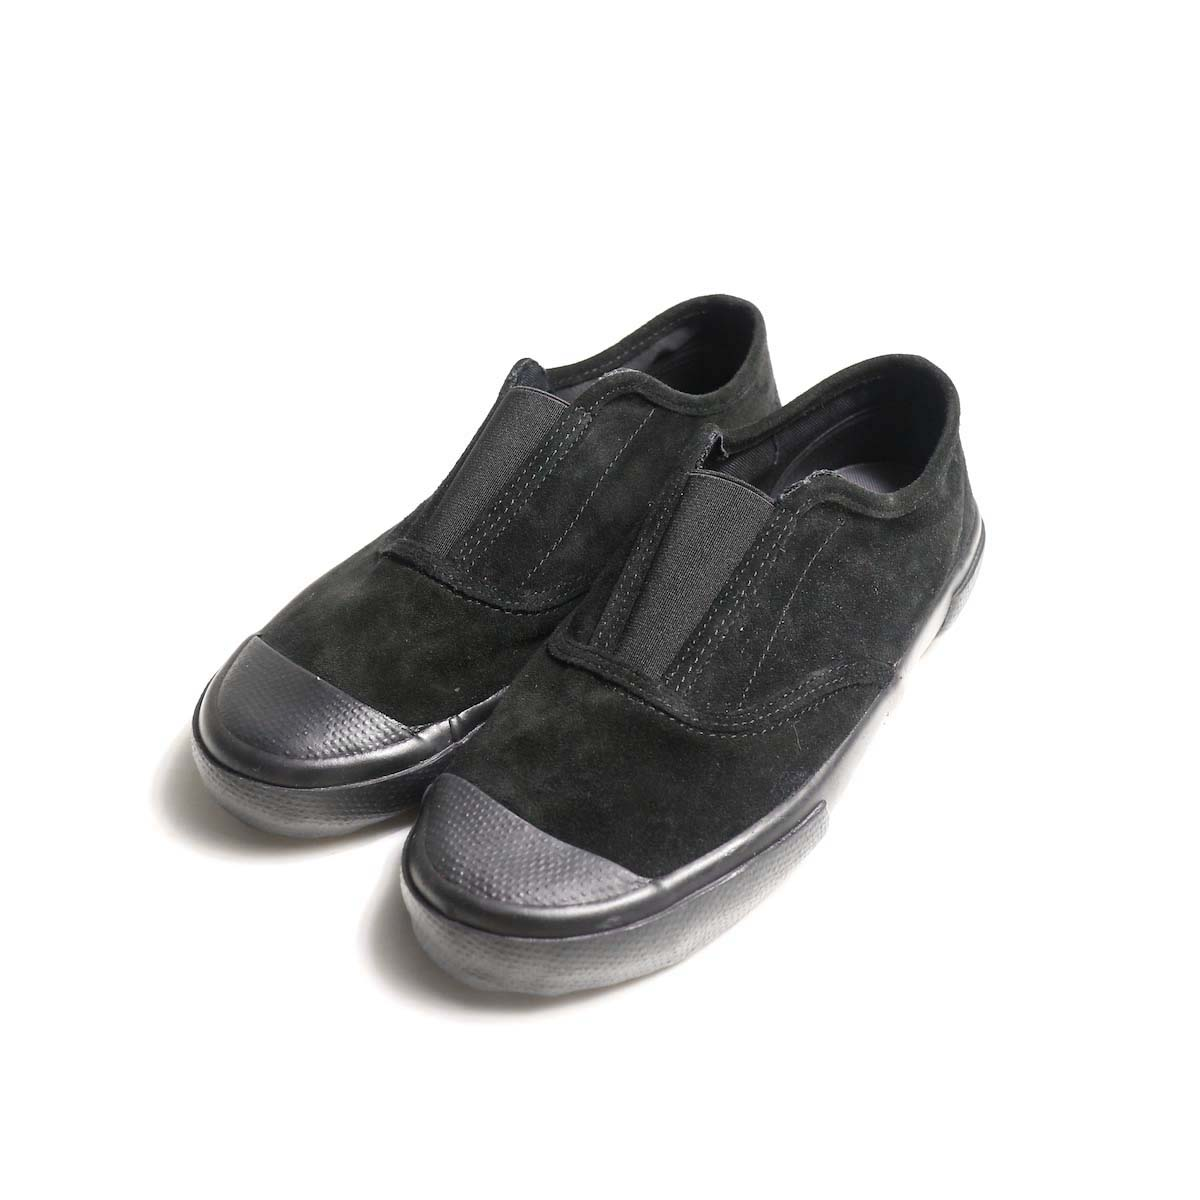 REPRODUCTION OF FOUND / ITALIAN MILITARY TRAINER (Black Suede)